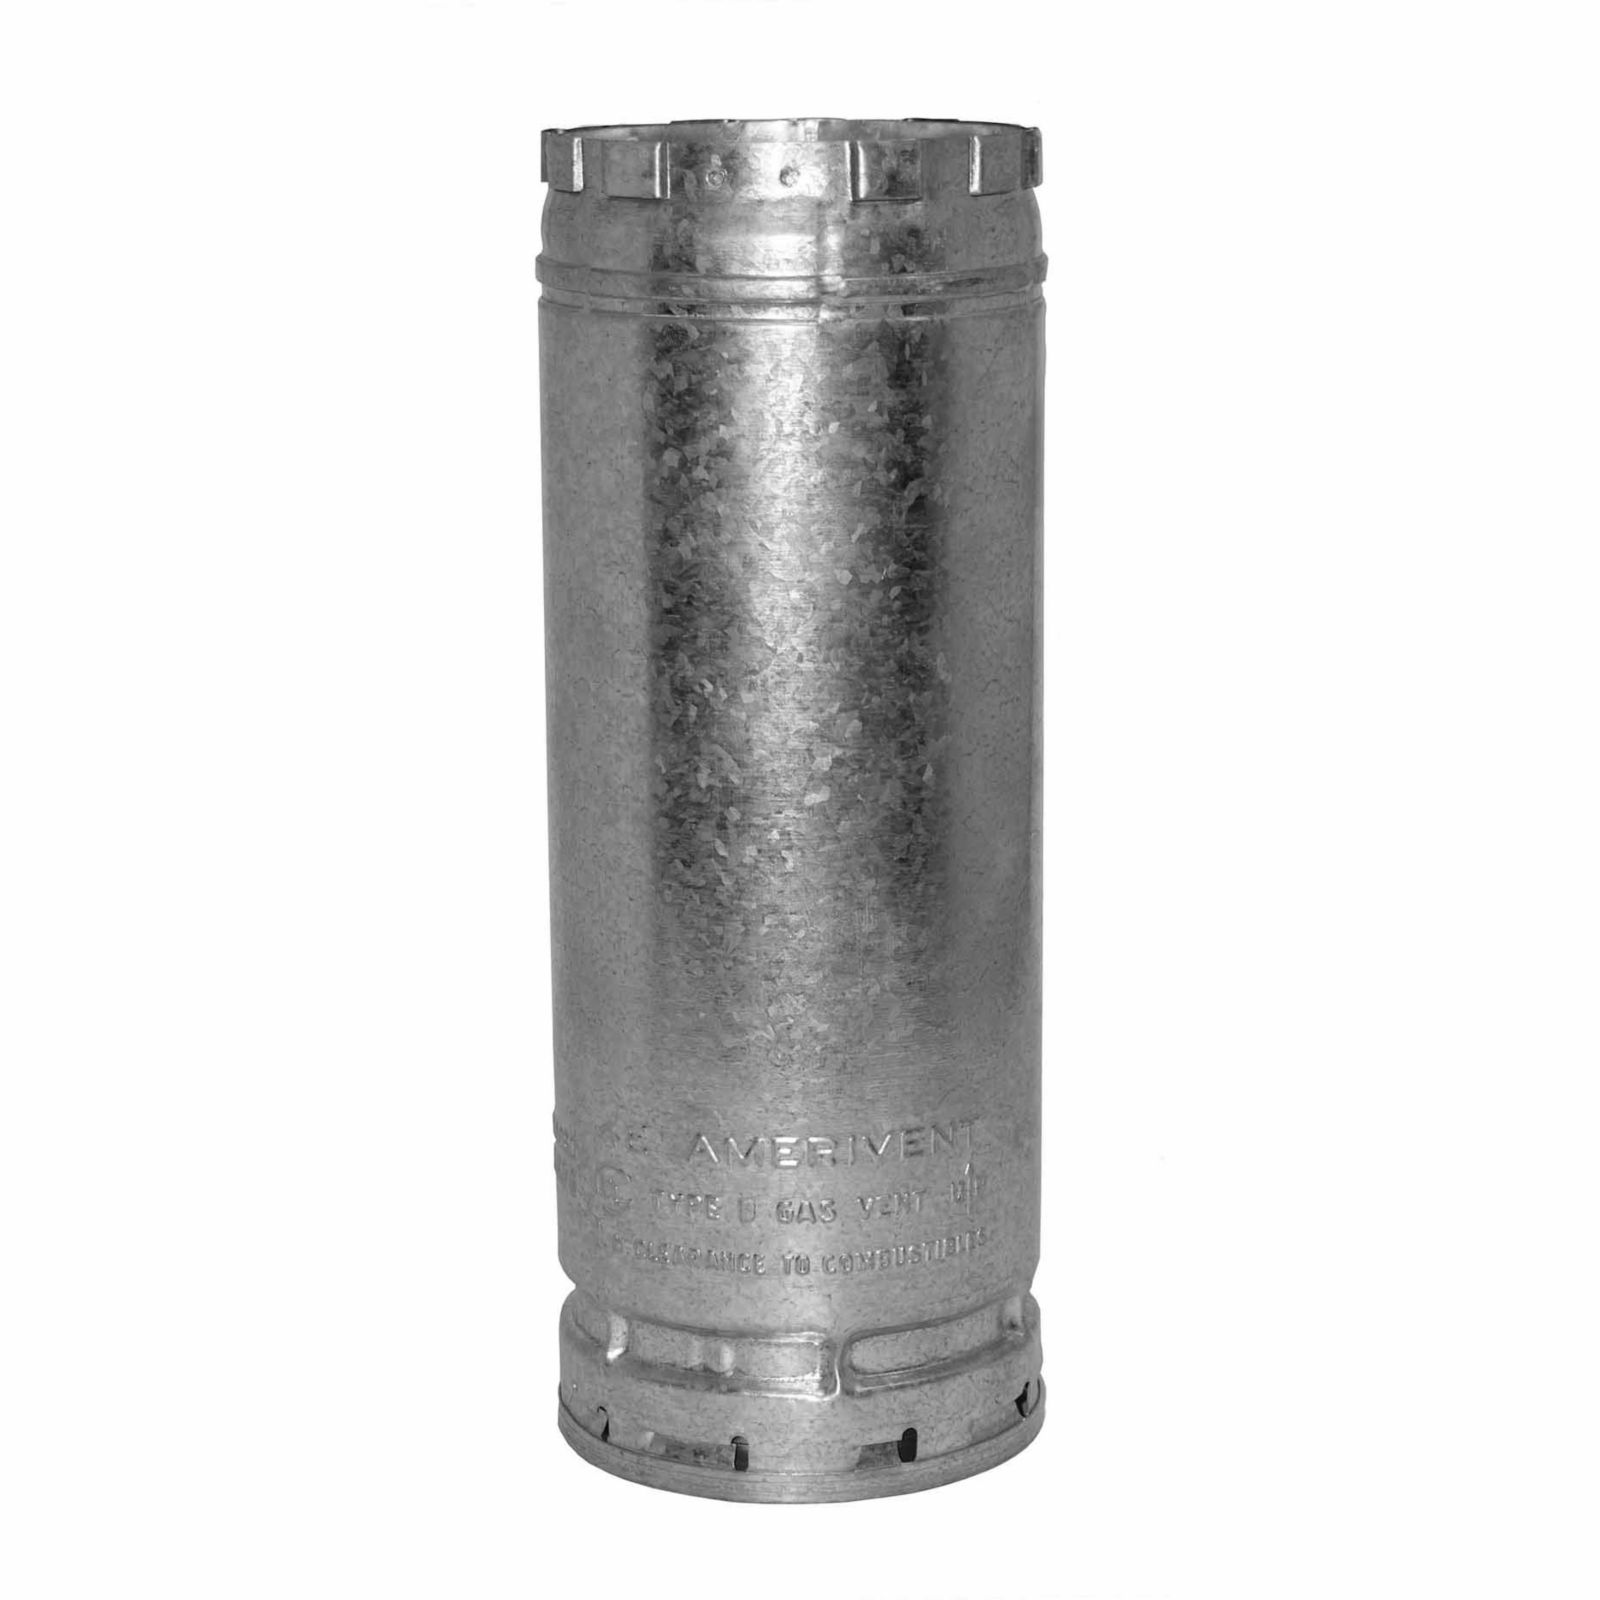 "AmeriVent 4E4 - Pipe Section Type B Gas Vent, 4"" Round X 48"" Length"